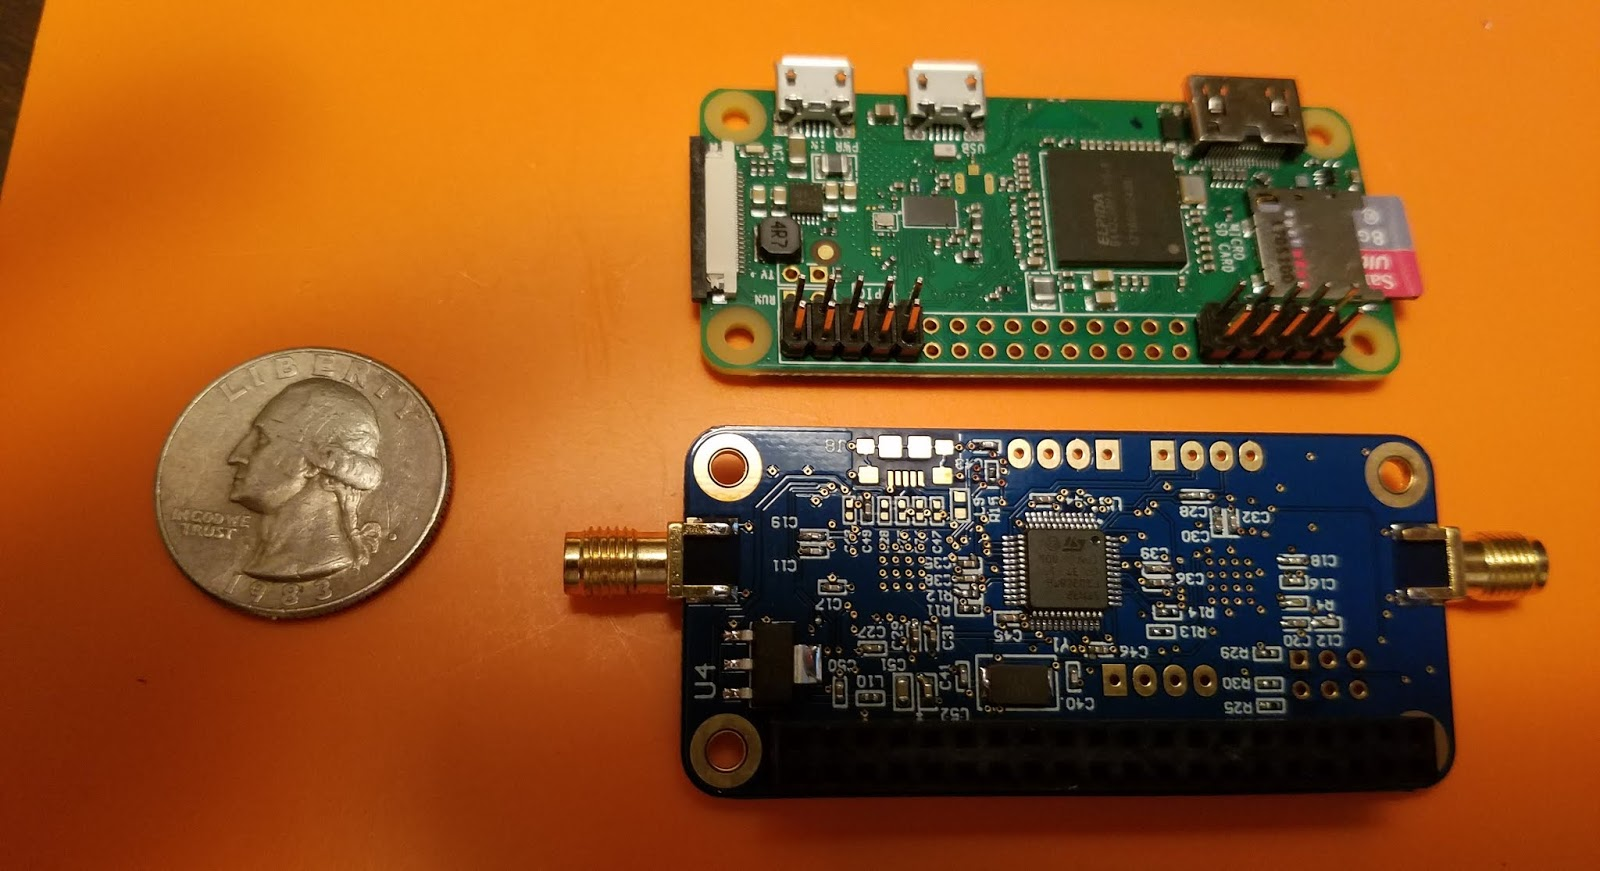 Hvdn Notebook Review N5boc Duplex Hotspot Board Circuit David Dennis Has Created A High Quality Small Mmdvm For Use With The Raspberry Pi Zero Or Any Of Larger Too